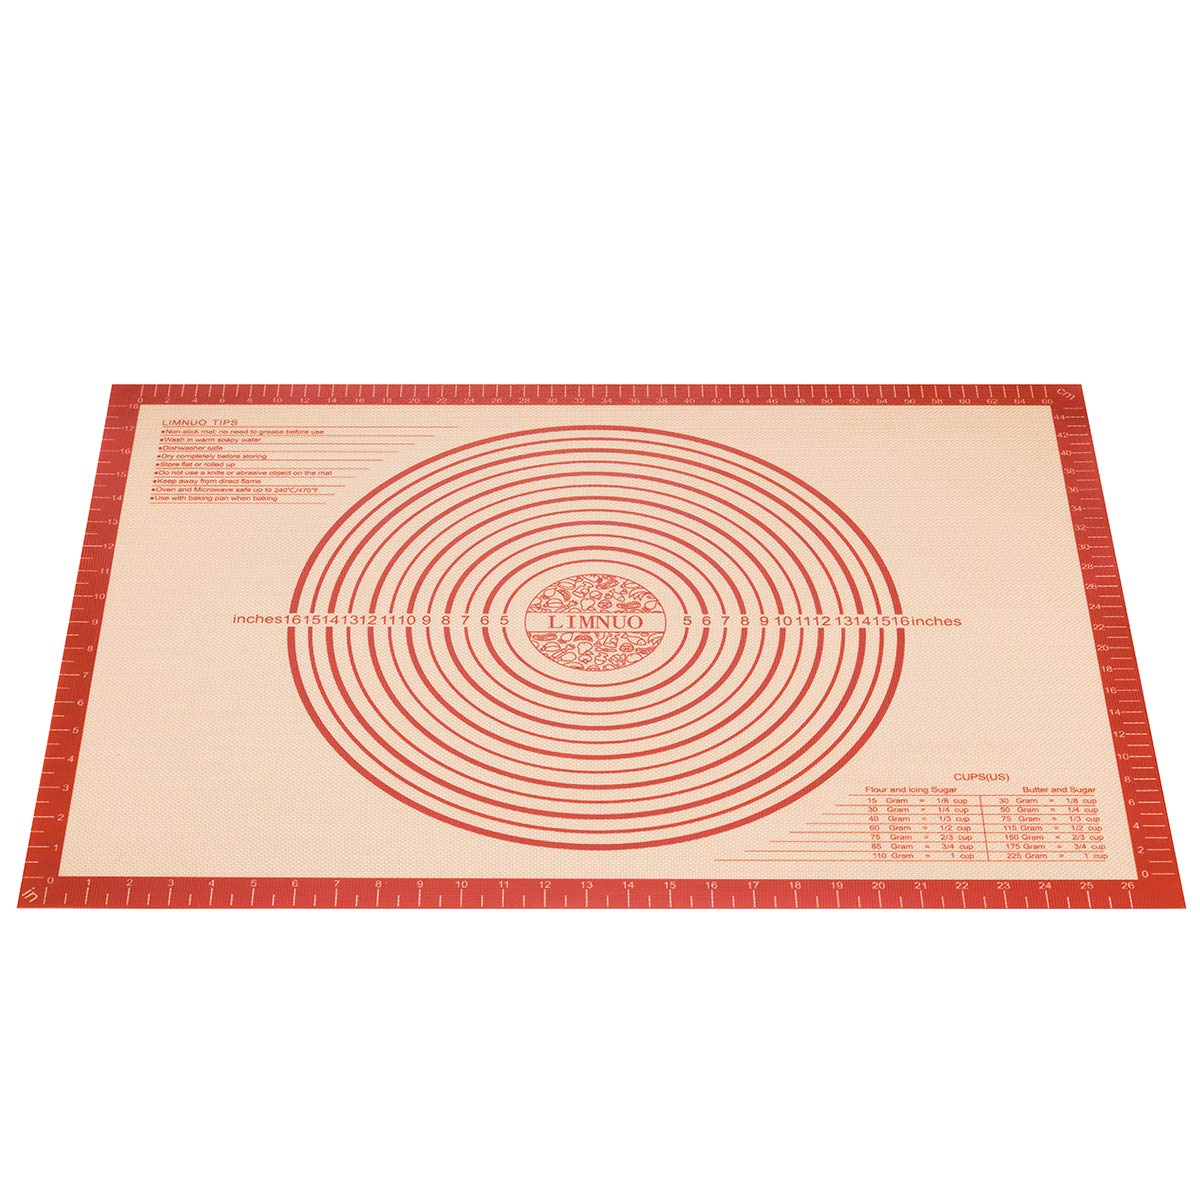 Reusable Non-Stick Large Silicone Pastry Mat for Housewife 20 x 28 Silicone Baking Mat for Pastry Rolling with Measurements,Large 28 x 20 ;Liner Heat Resistance Table Placemat Pad Pastry Board